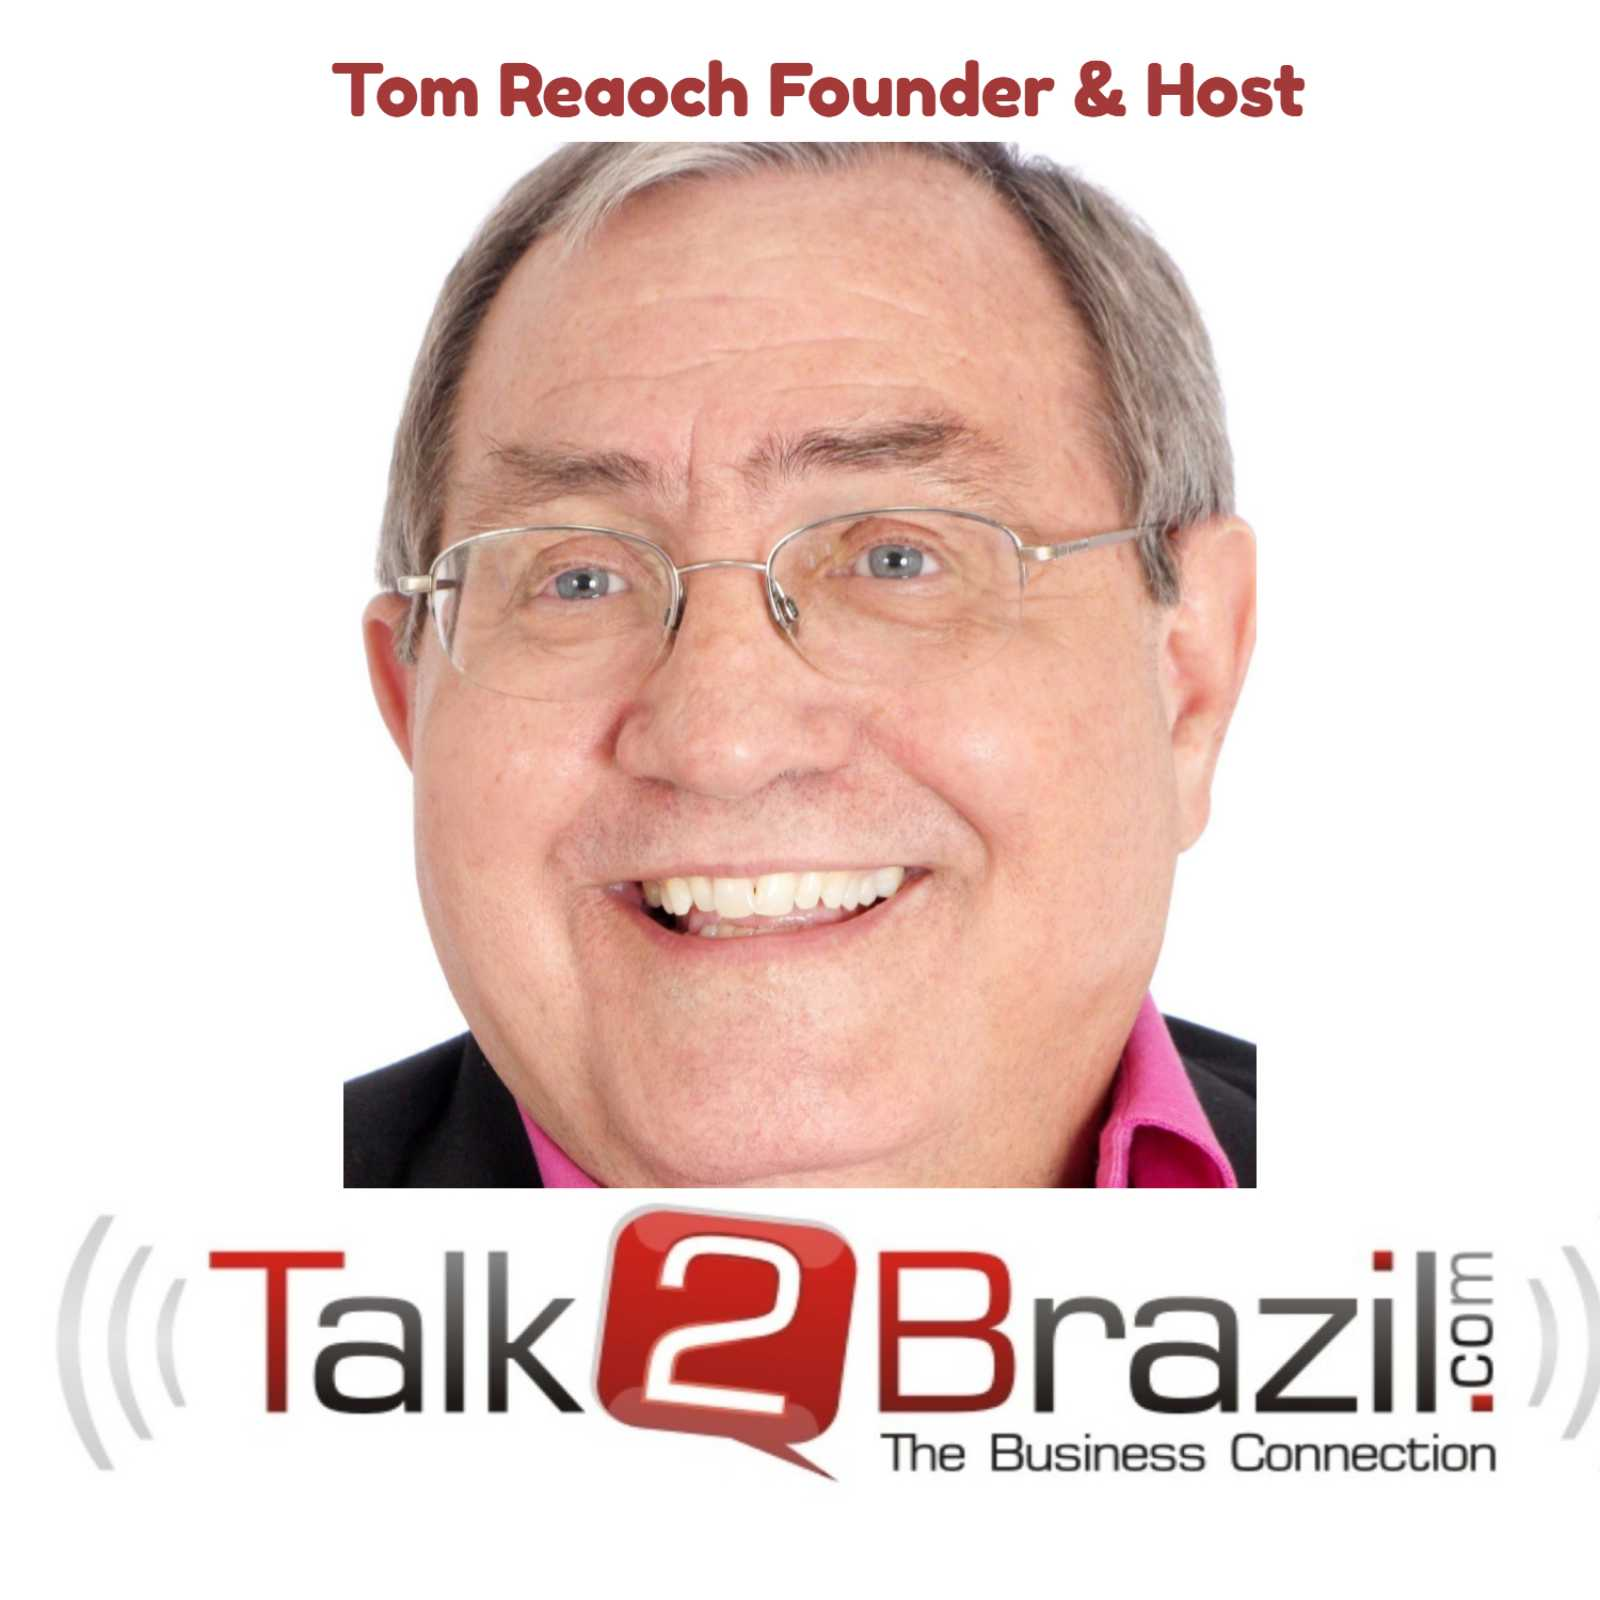 Talk 2 Brazil Podcast on Spreaker